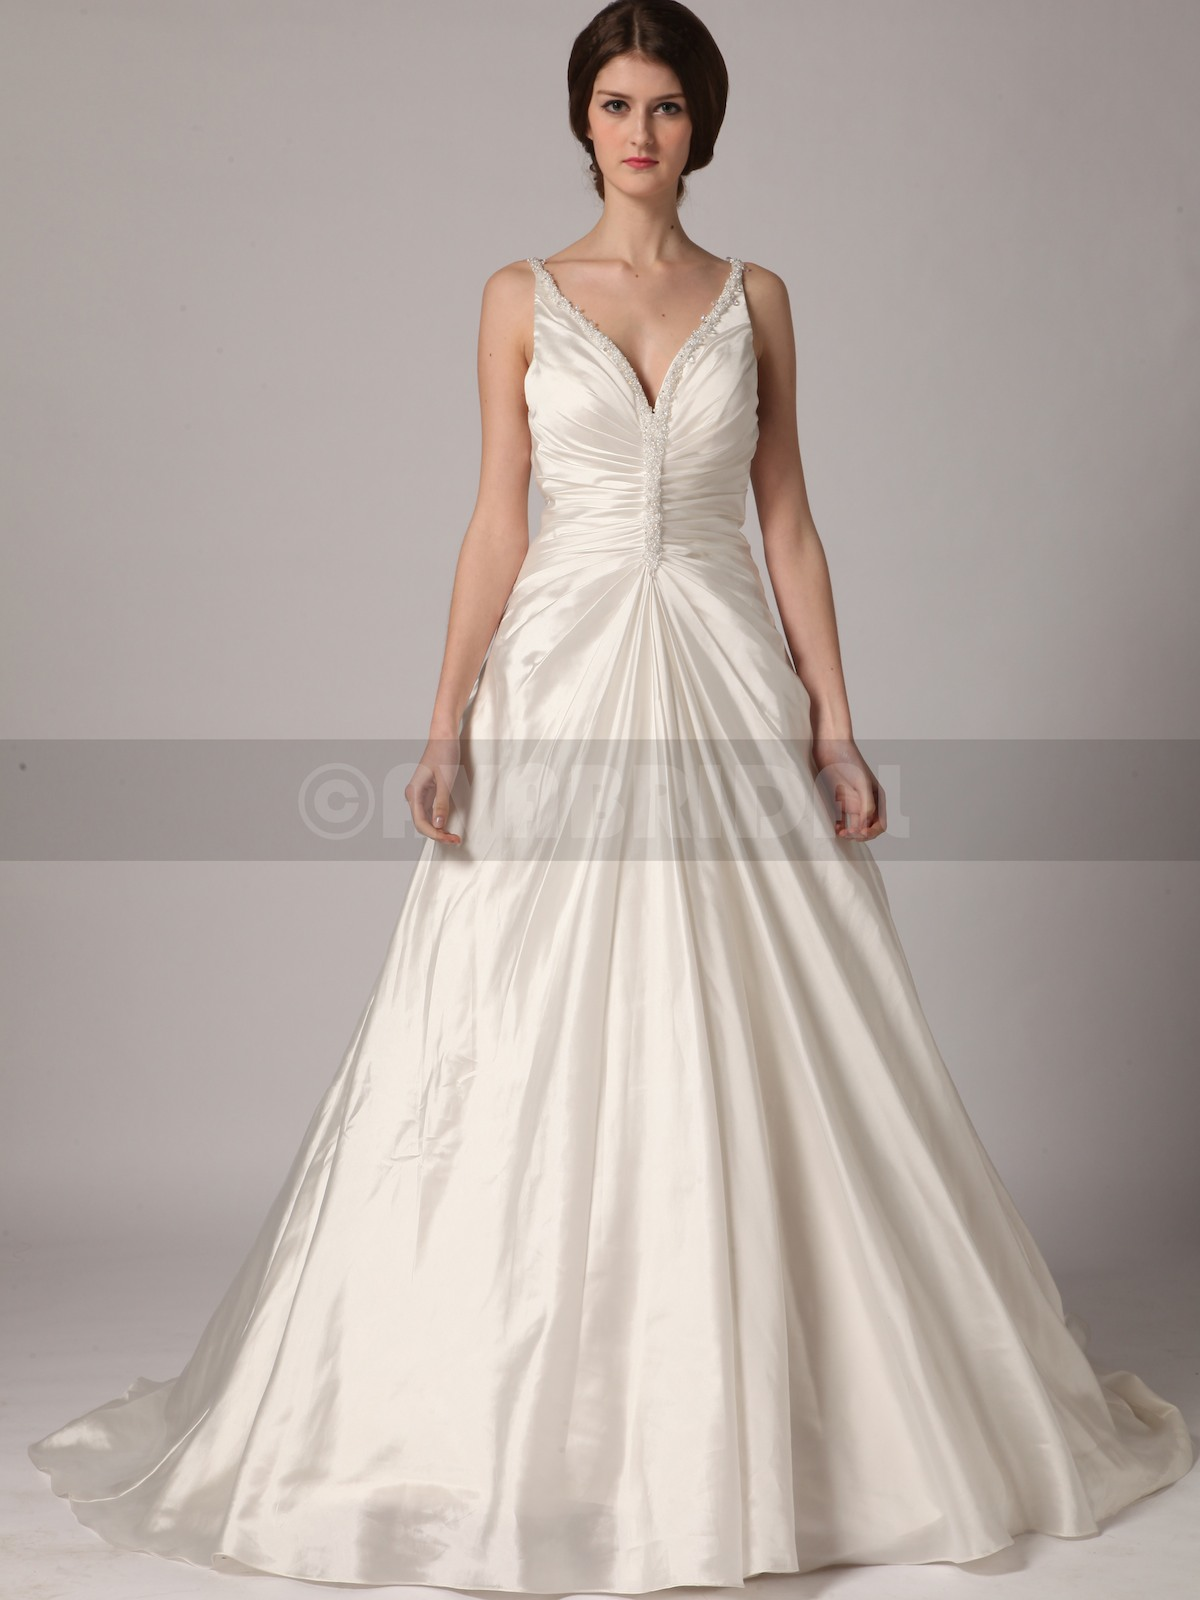 Fall Wedding Dress - Lindsay - Front